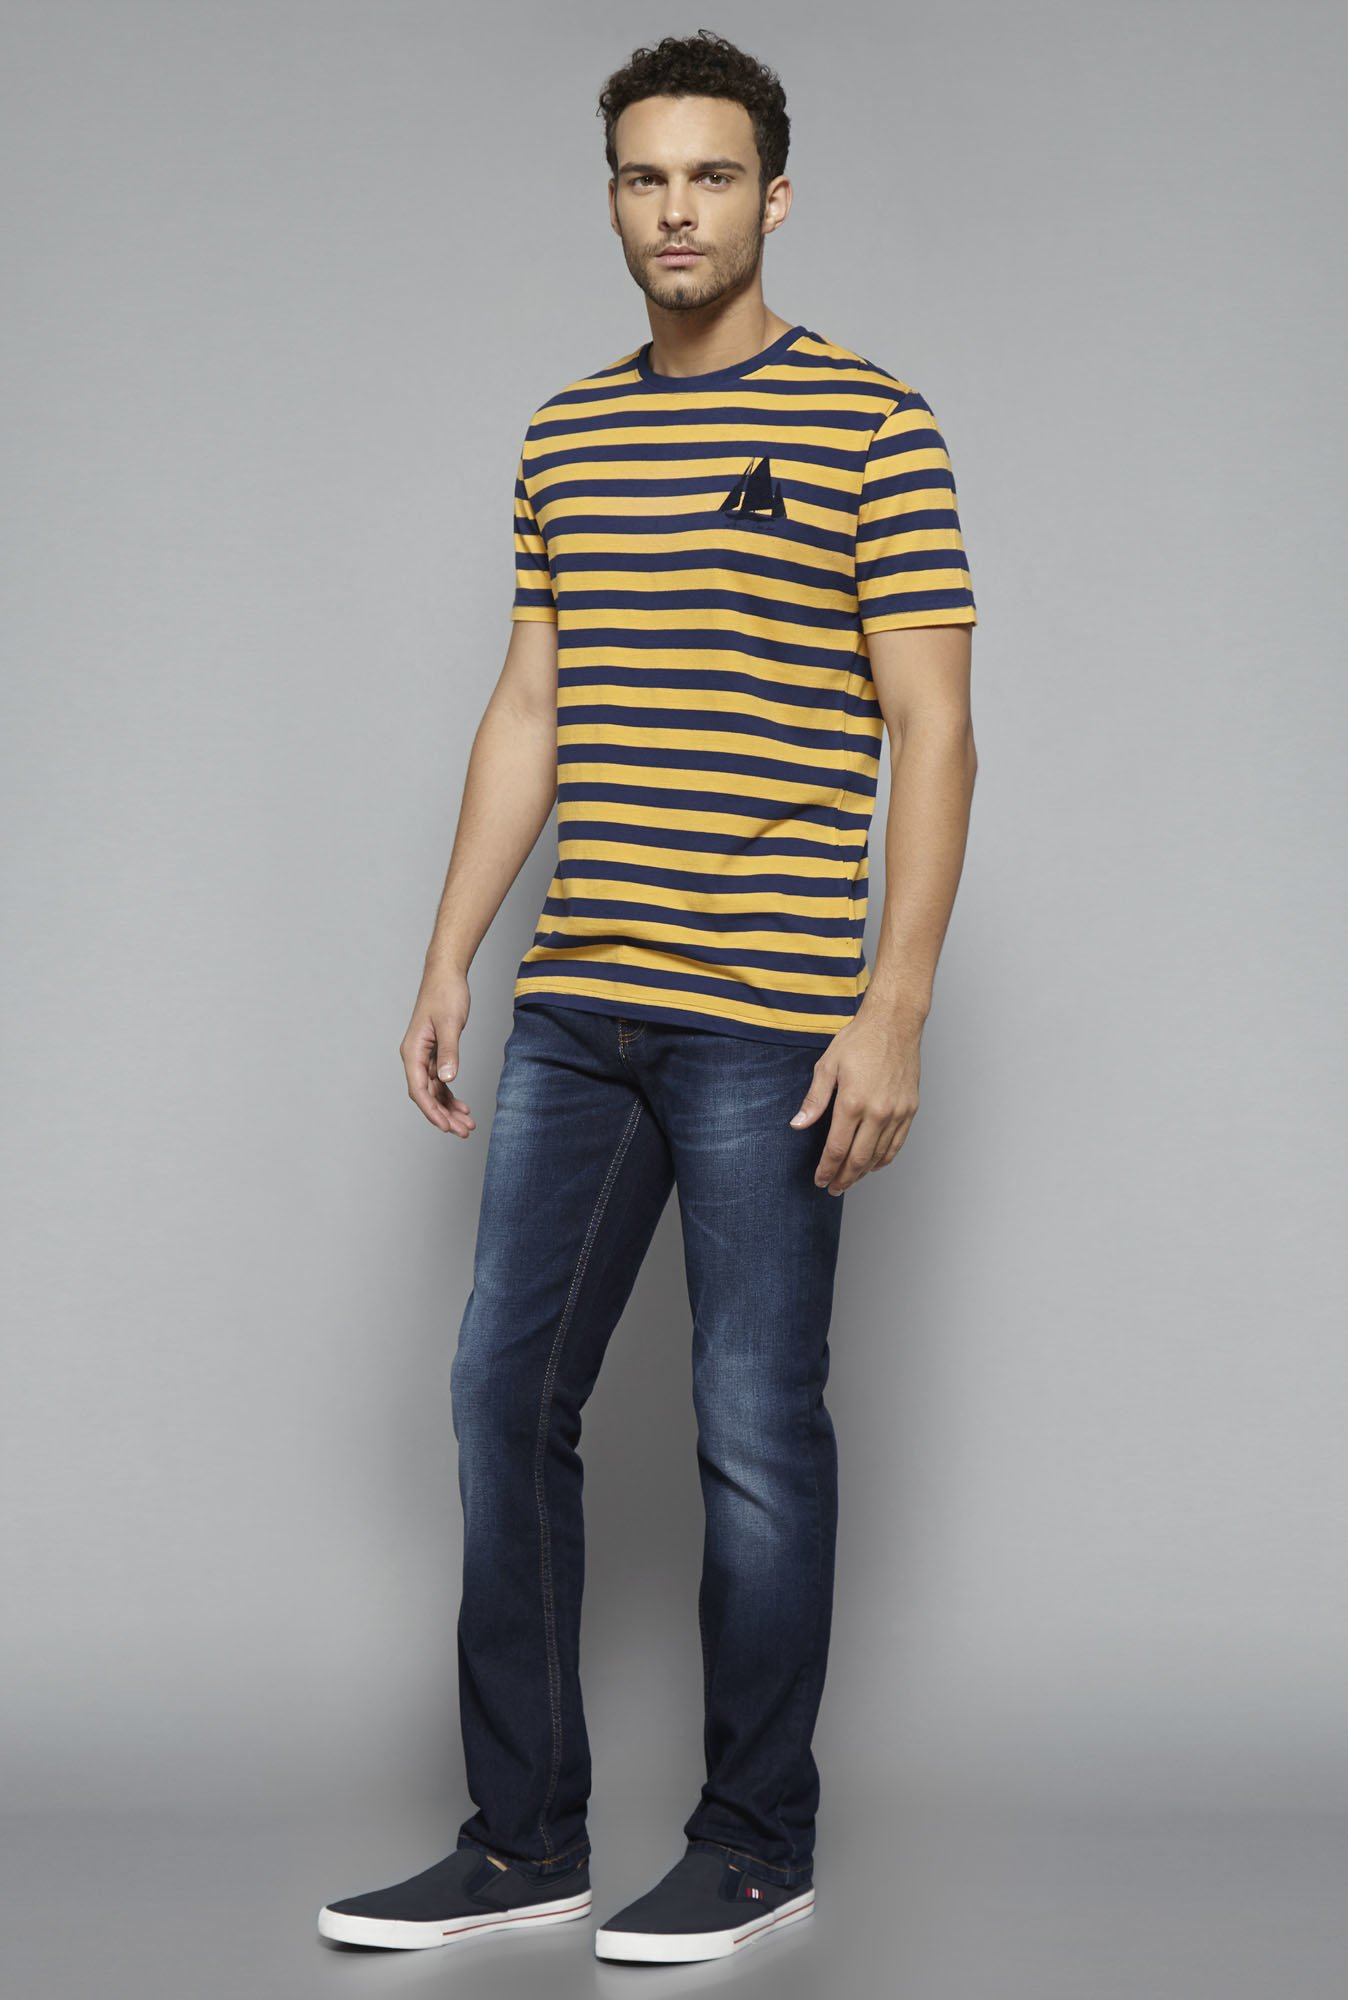 Westsport by Westside Yellow Striped T Shirt